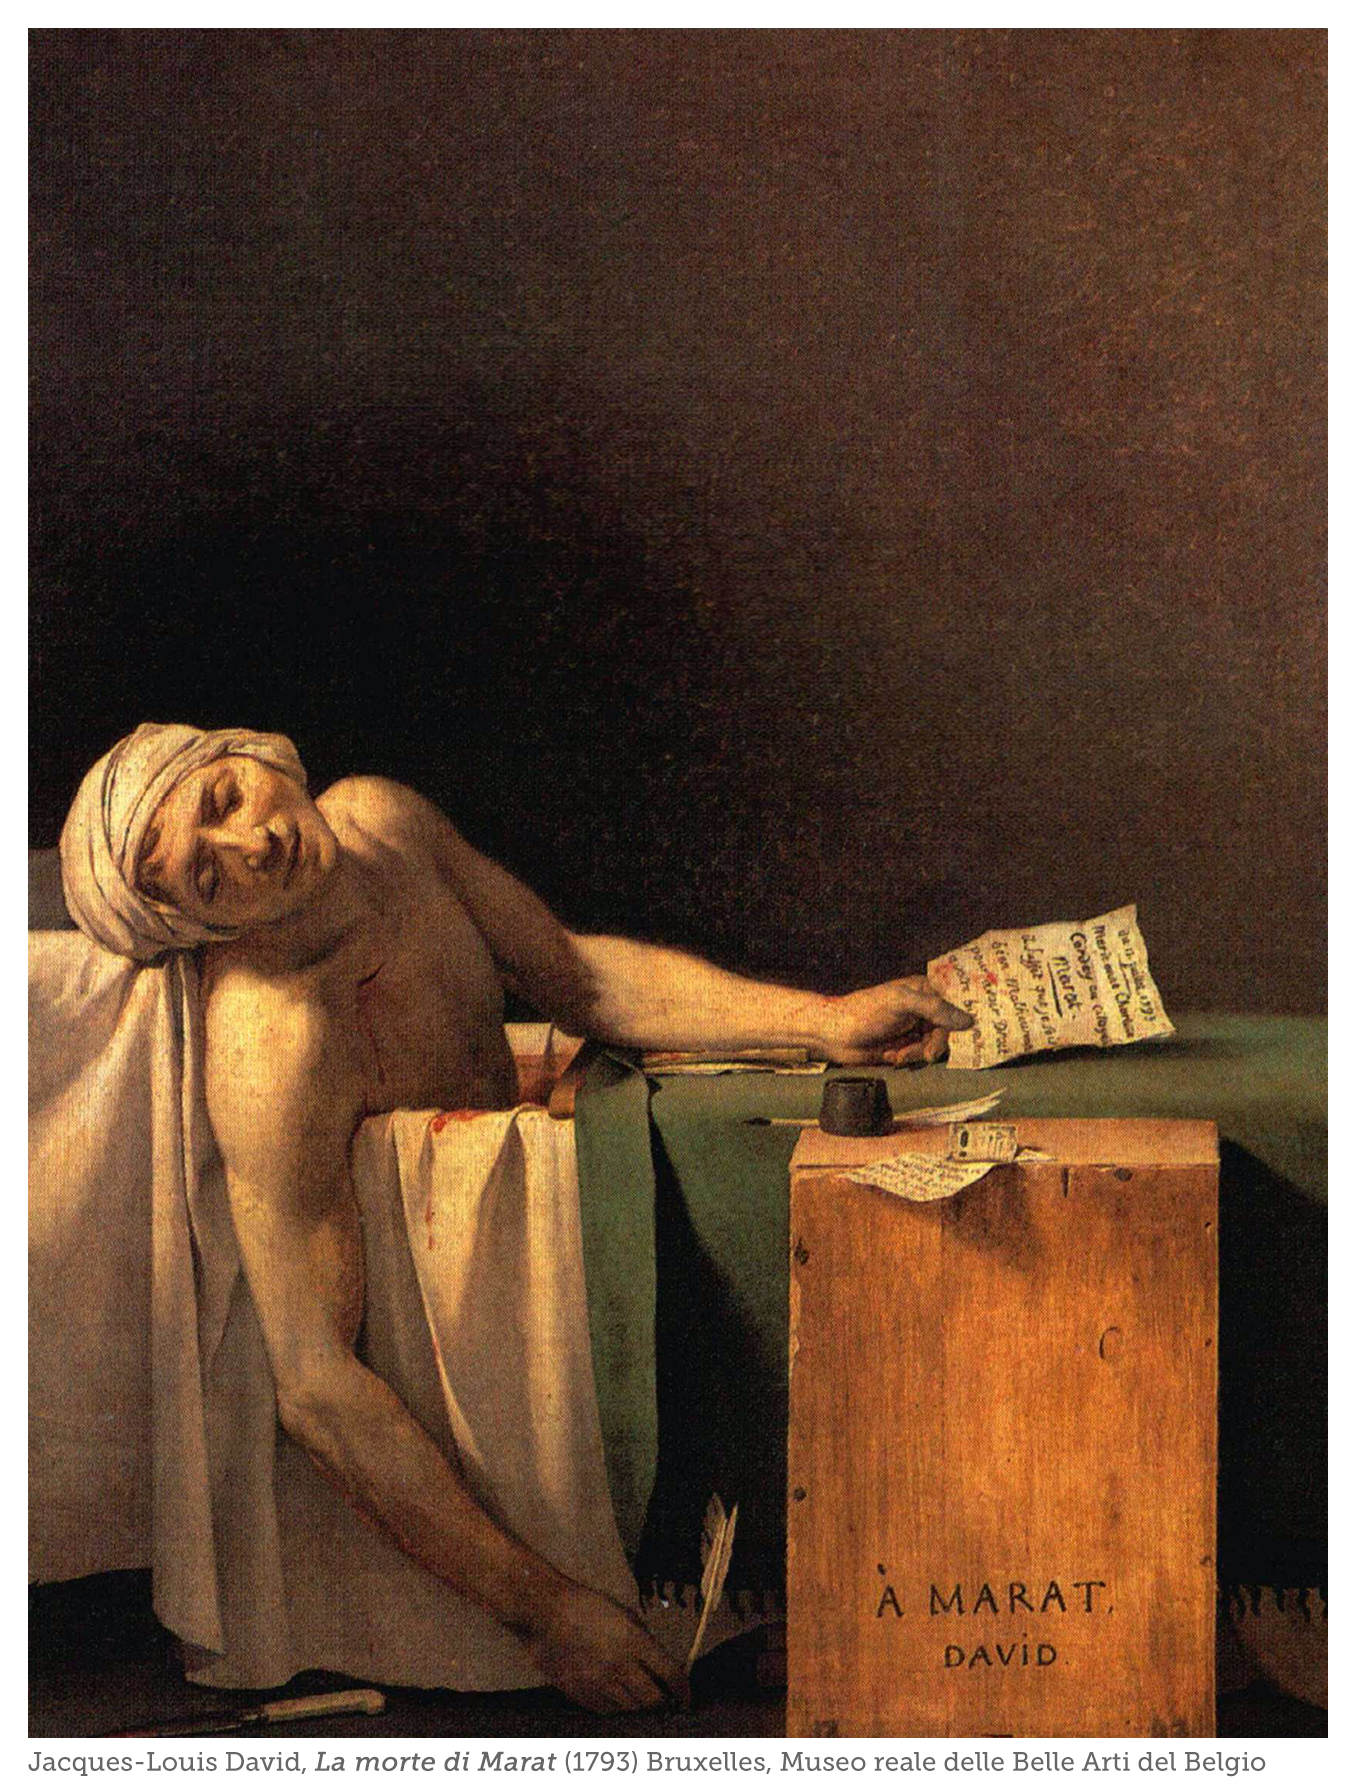 La morte di Marat di Jacques Louis David: il teatro delle illusioni perdute